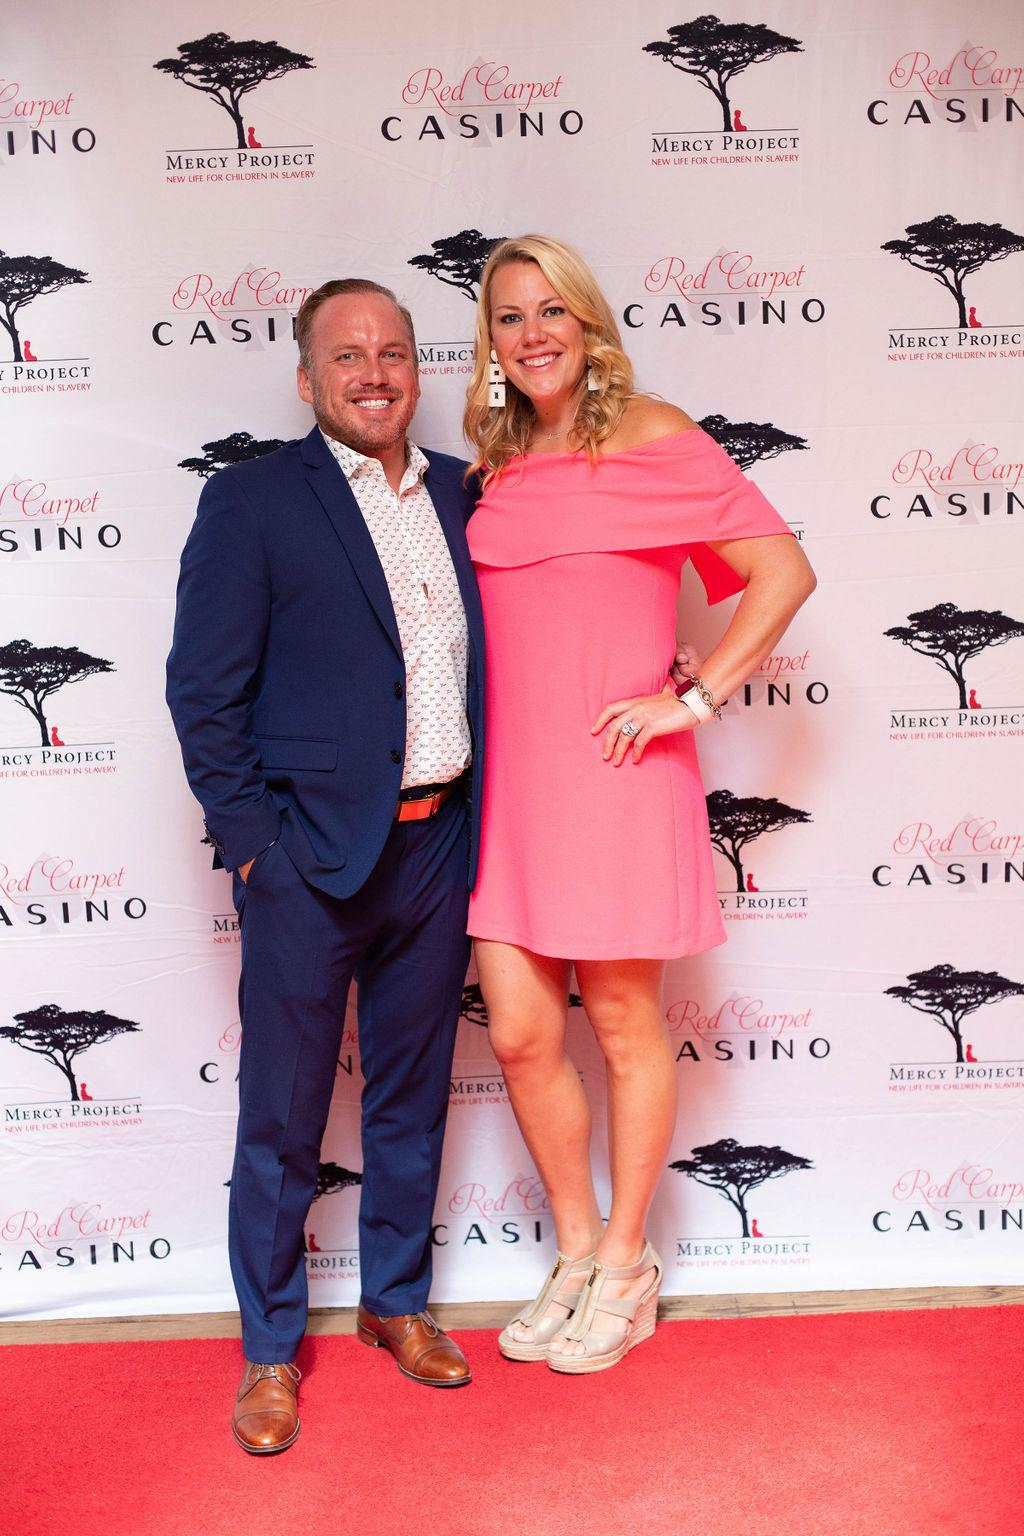 Mercy Project Red Carpet Casino 2019 | Gallery | theeagle com